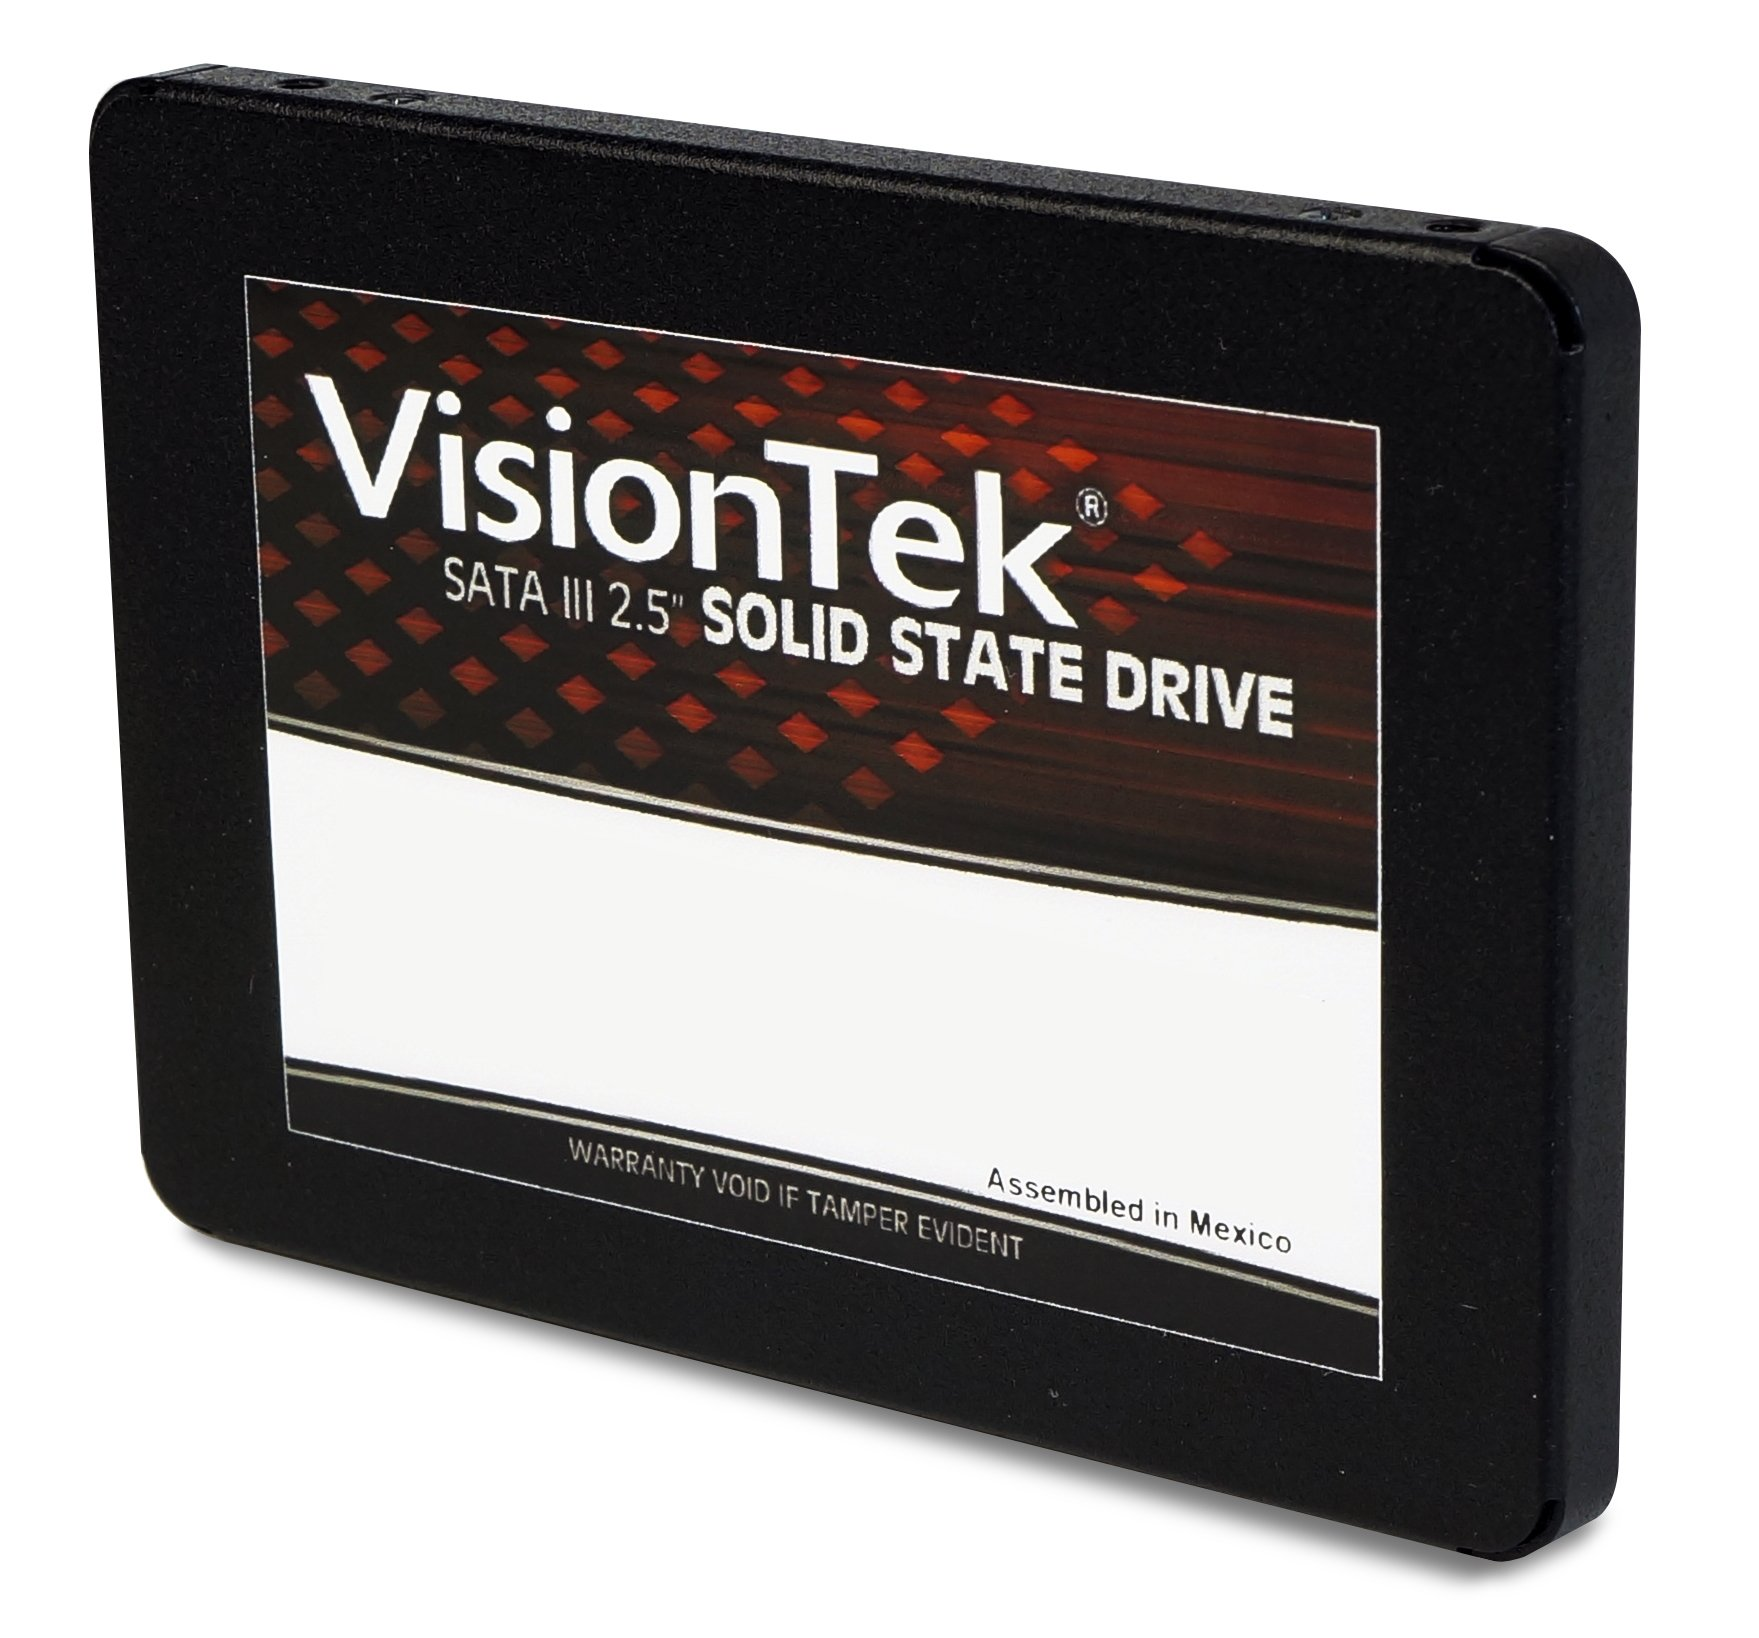 SSD : VisionTek Products 901169 Pro 1TB 7mm 2.5 SSD